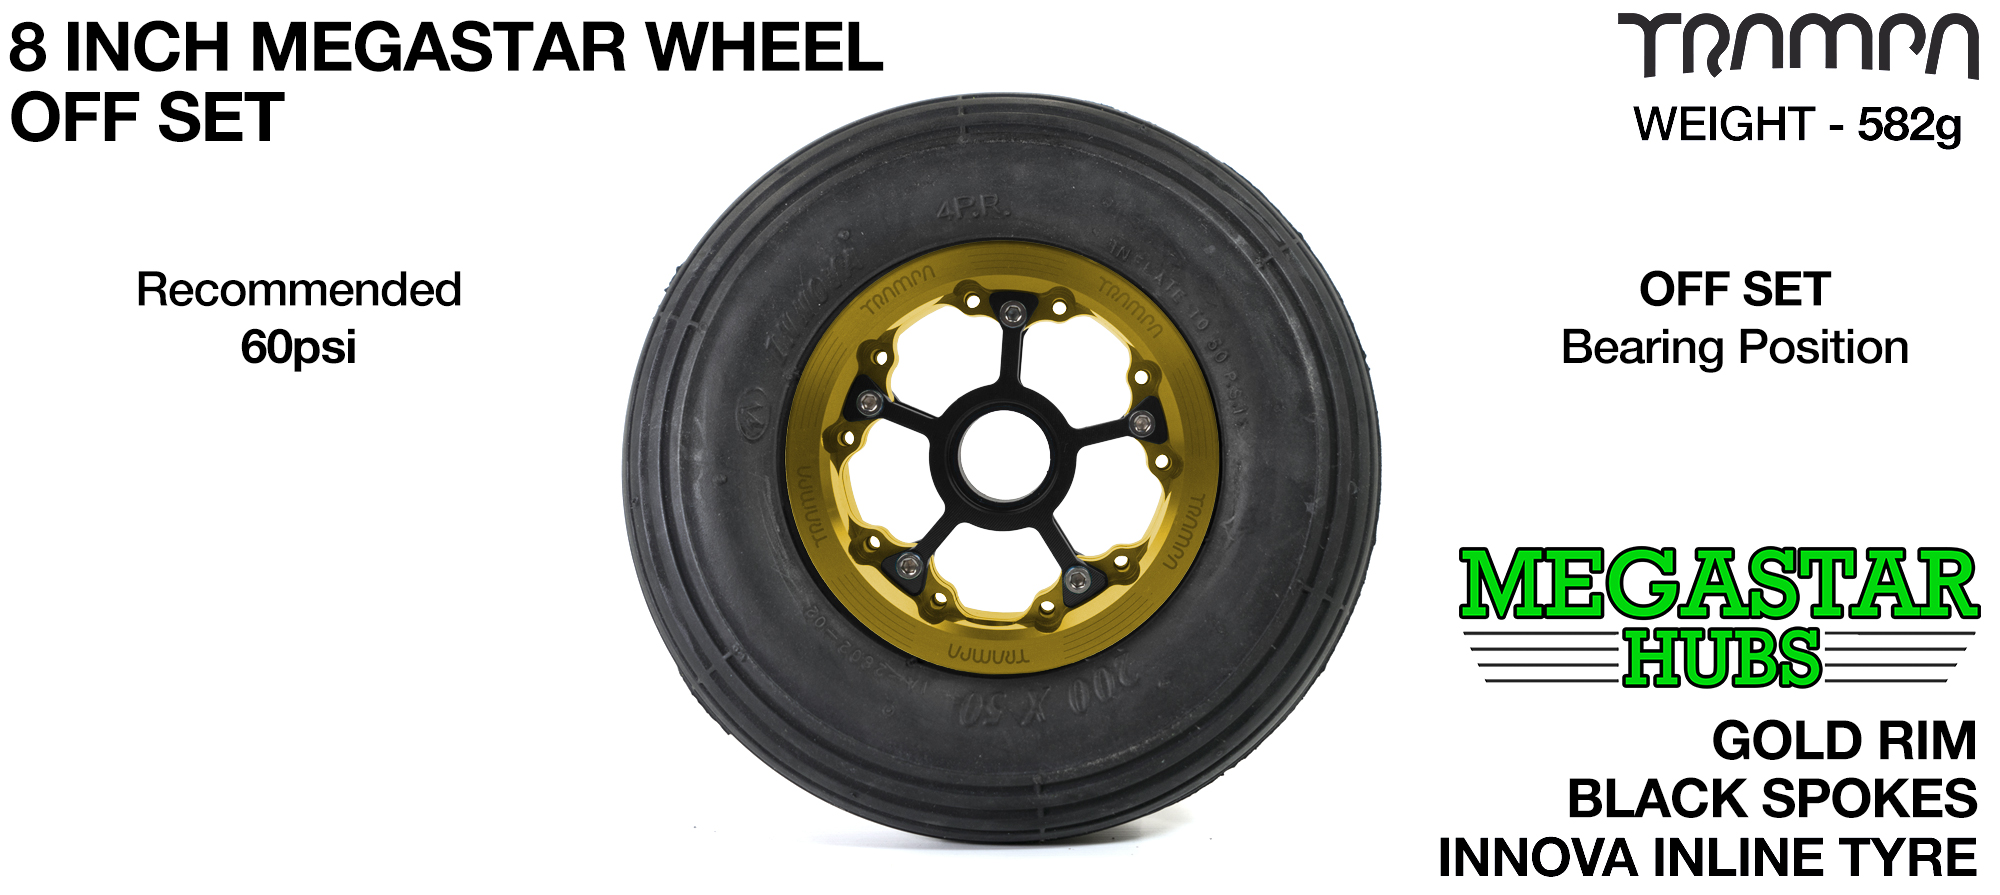 "GOLD MEGASTAR Rims with BLACK Spokes & 8"" INLINE Tyres"